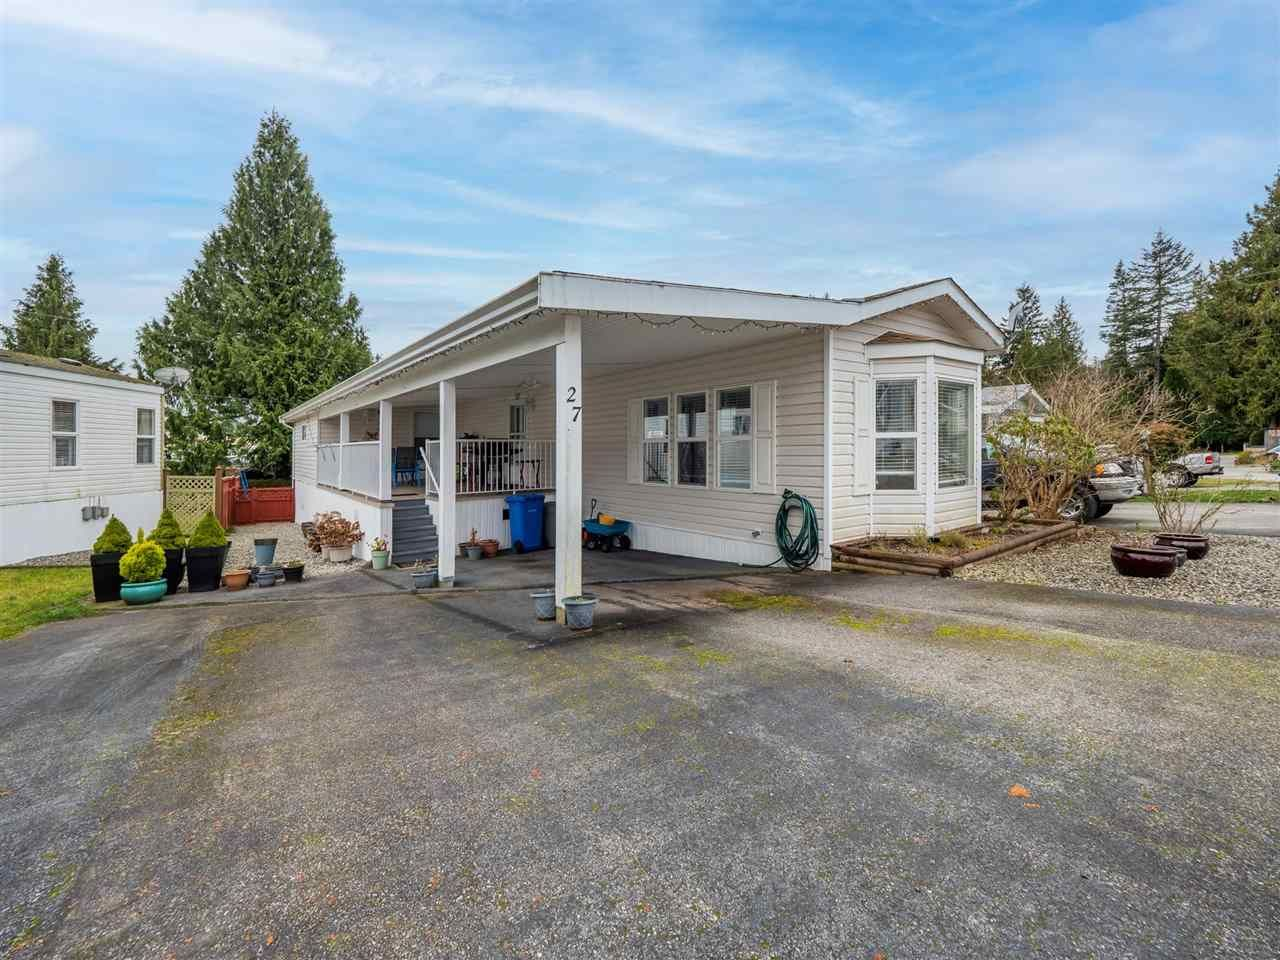 Main Photo: 27 5575 MASON Road in Sechelt: Sechelt District Manufactured Home for sale (Sunshine Coast)  : MLS®# R2532153